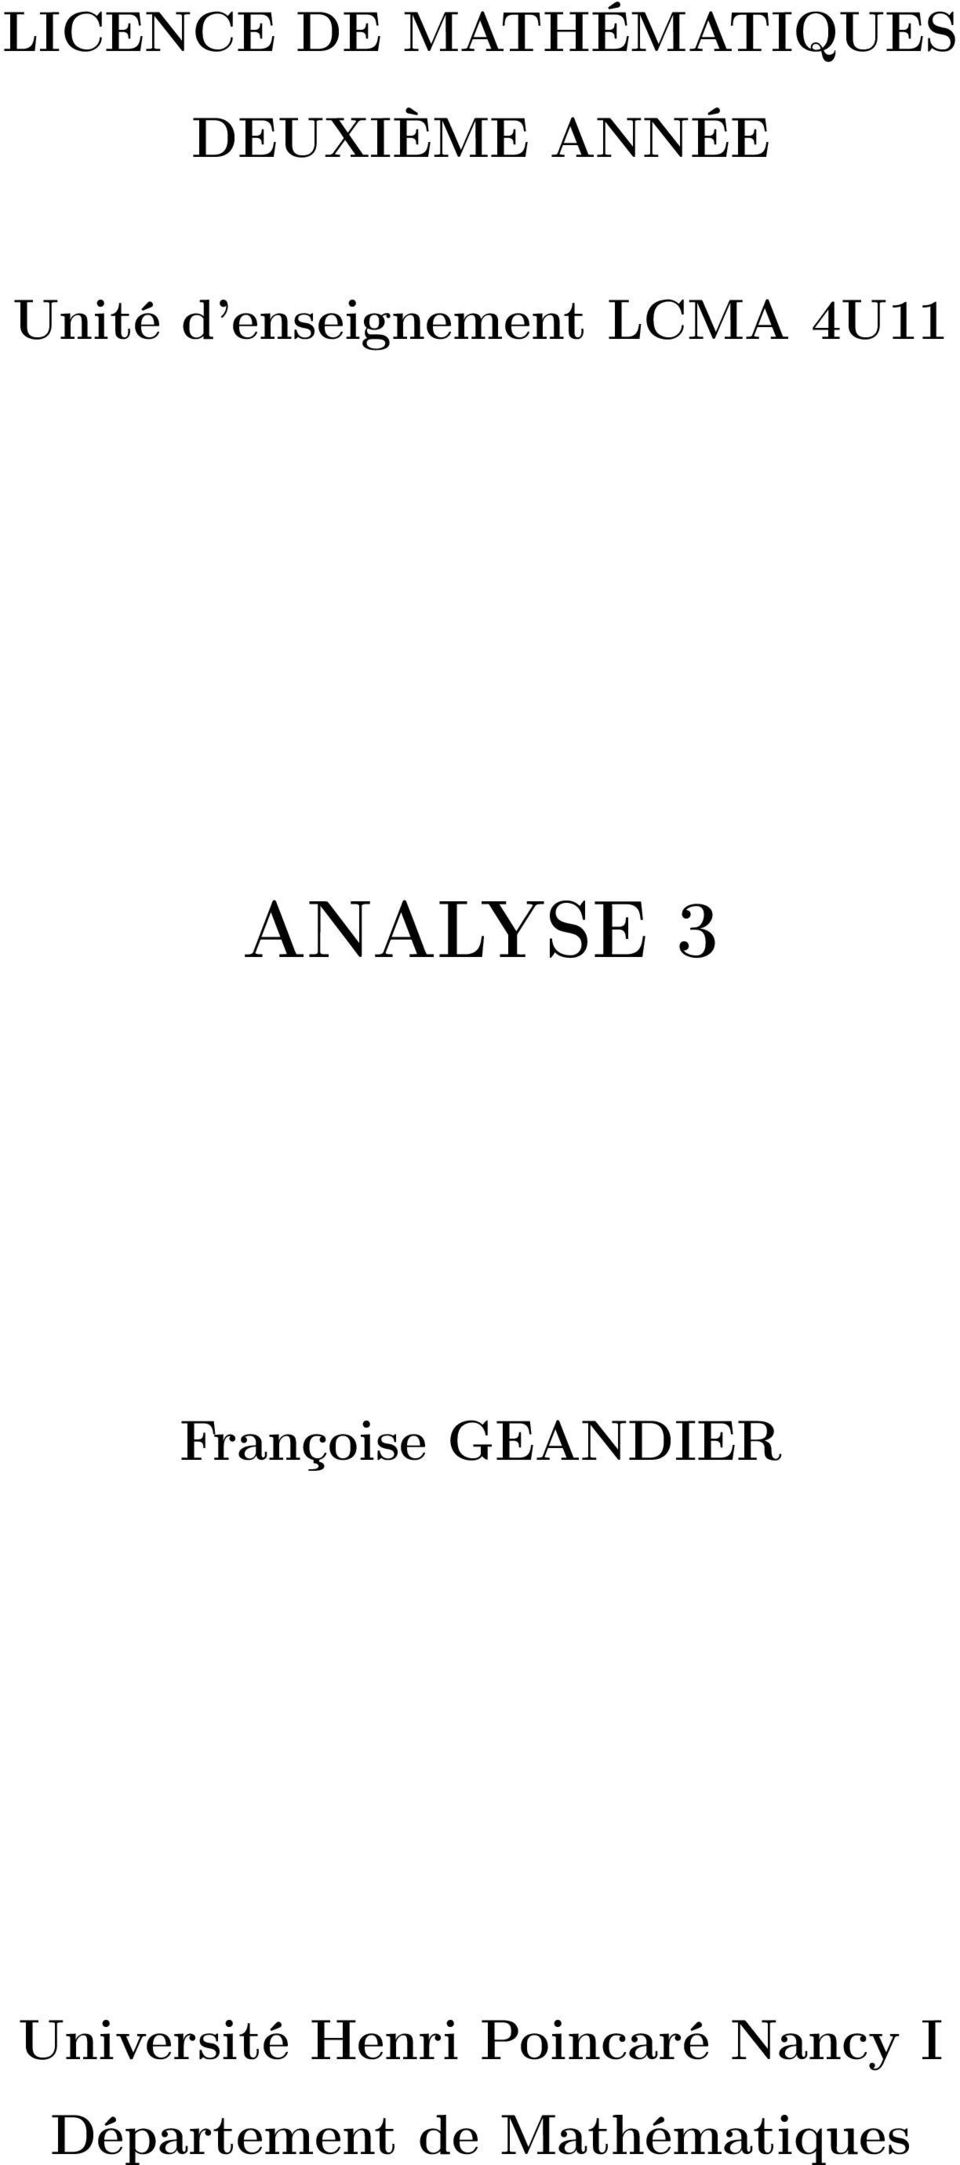 ANALYSE 3 Frnçoise GEANDIER Université